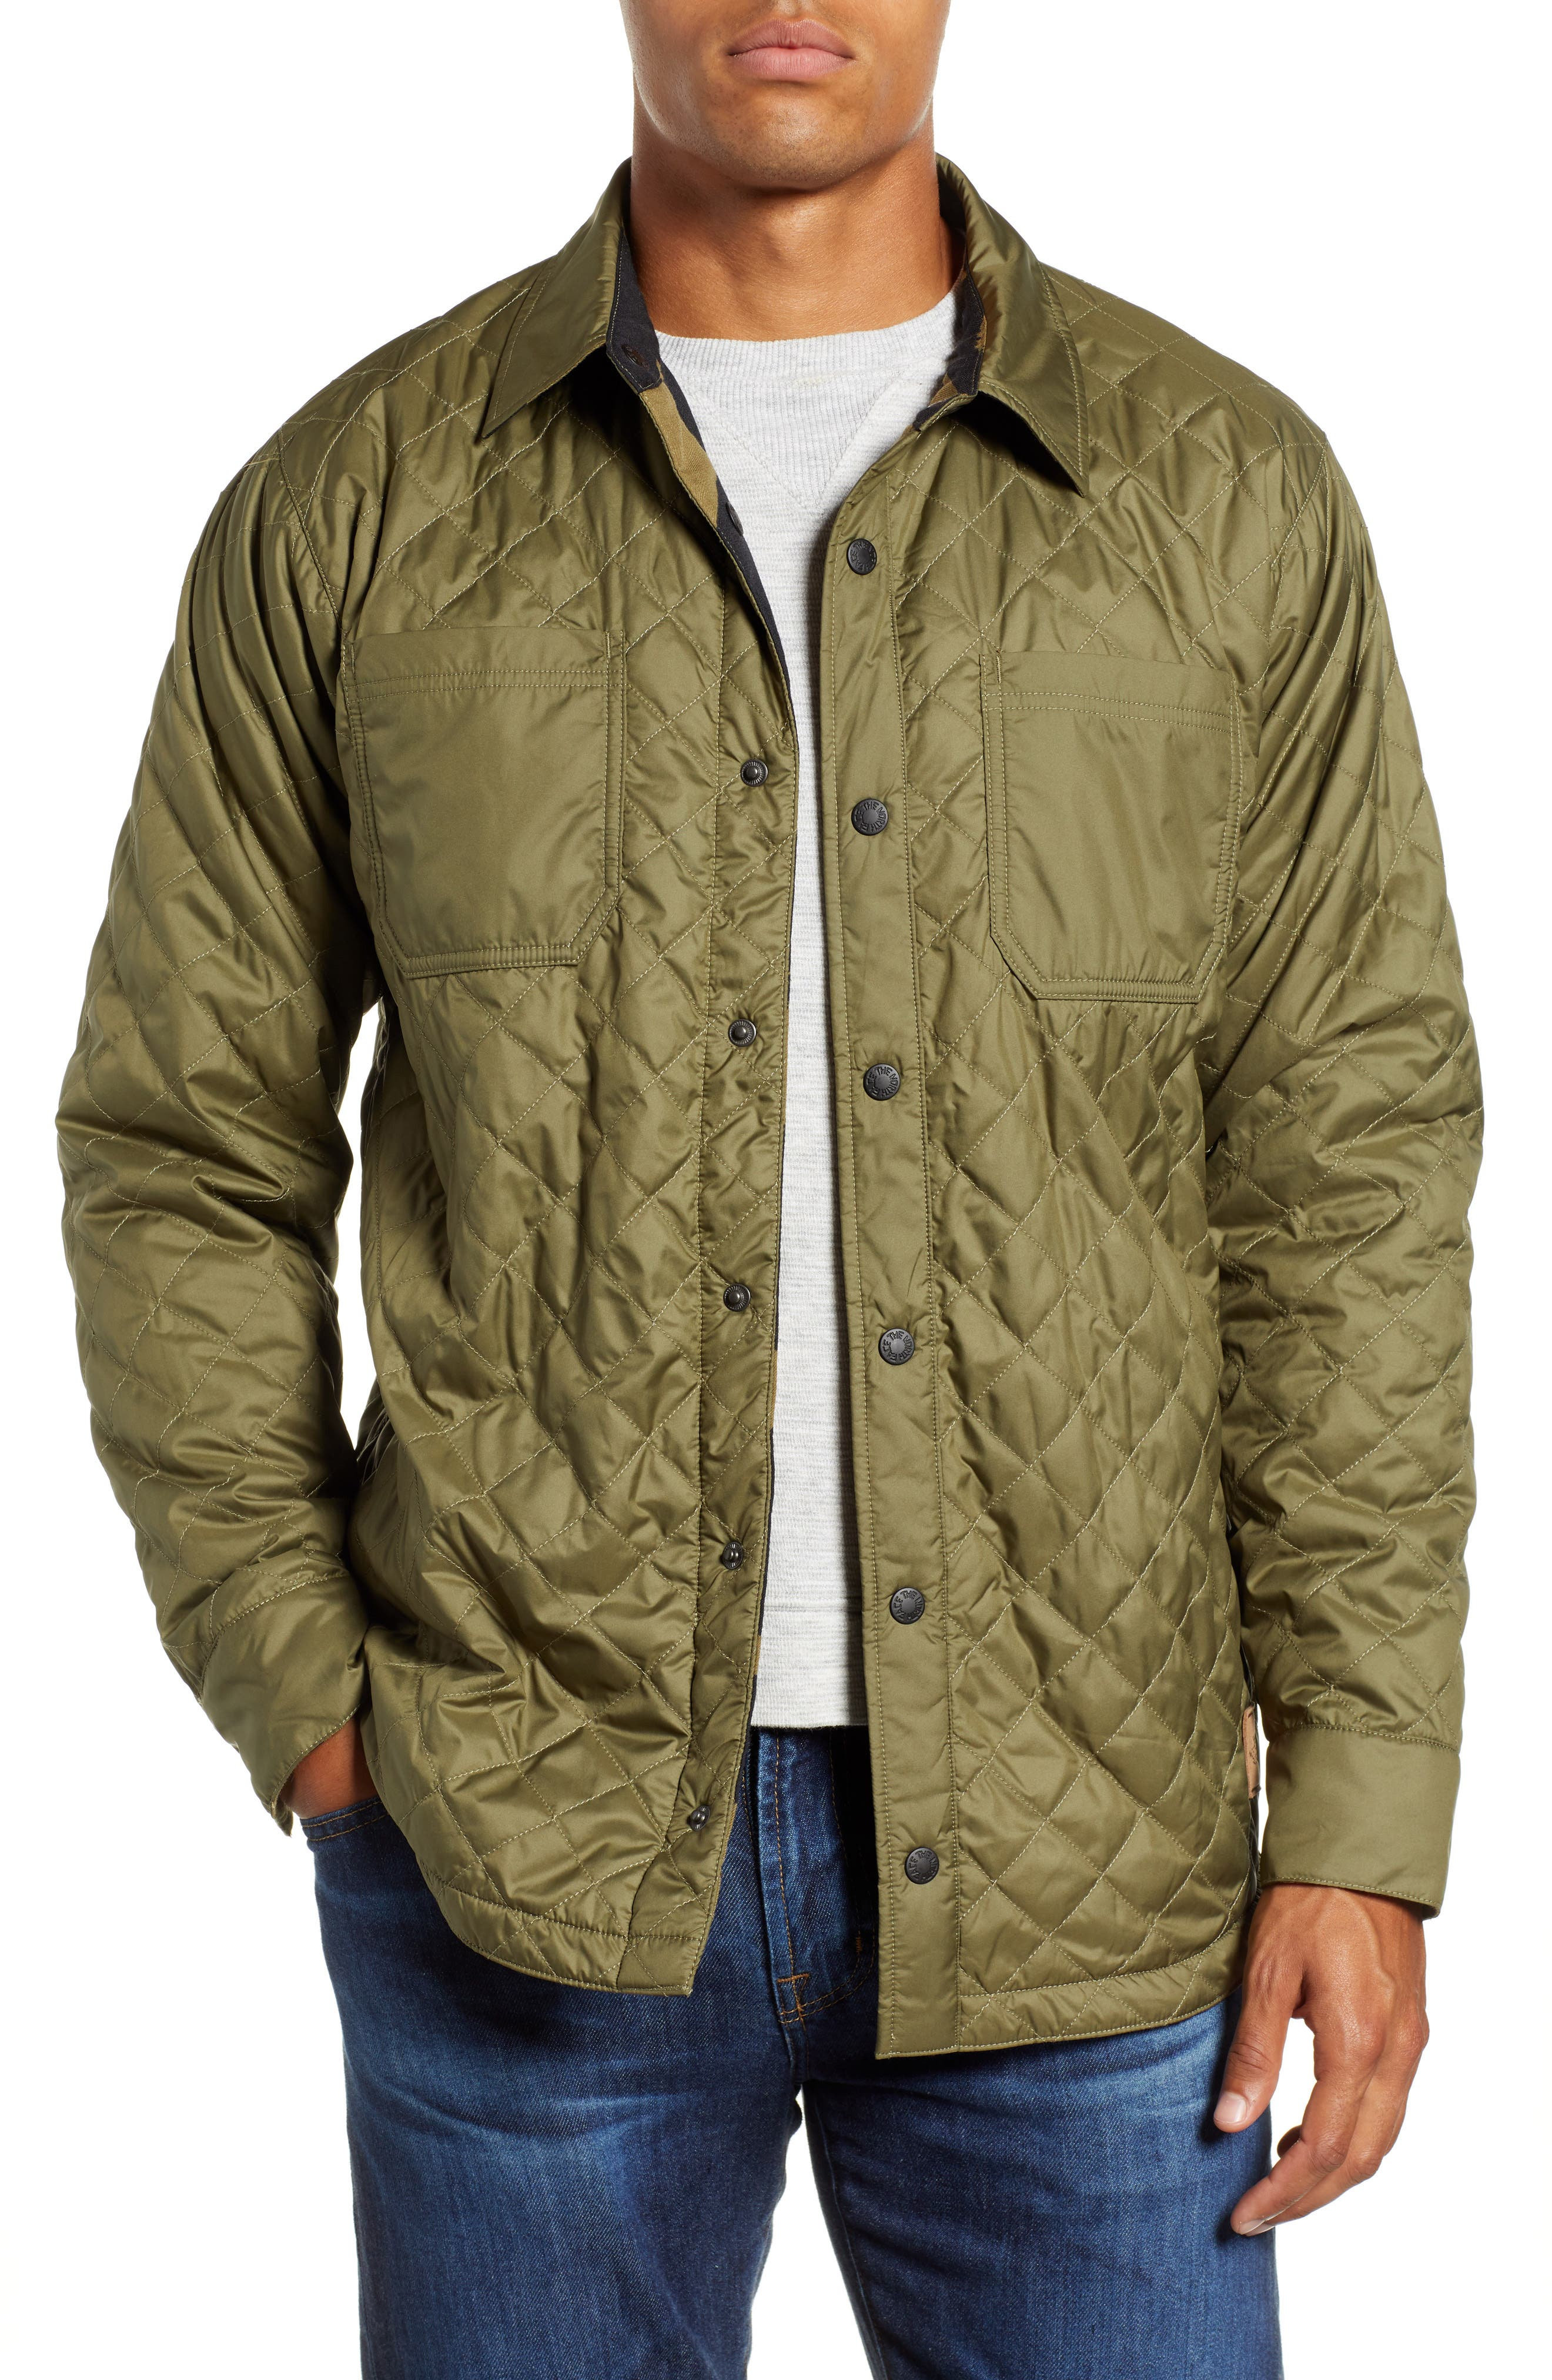 Fort Point Insulated Shirt Jacket,                             Main thumbnail 1, color,                             BURNT OLIVE GREEN